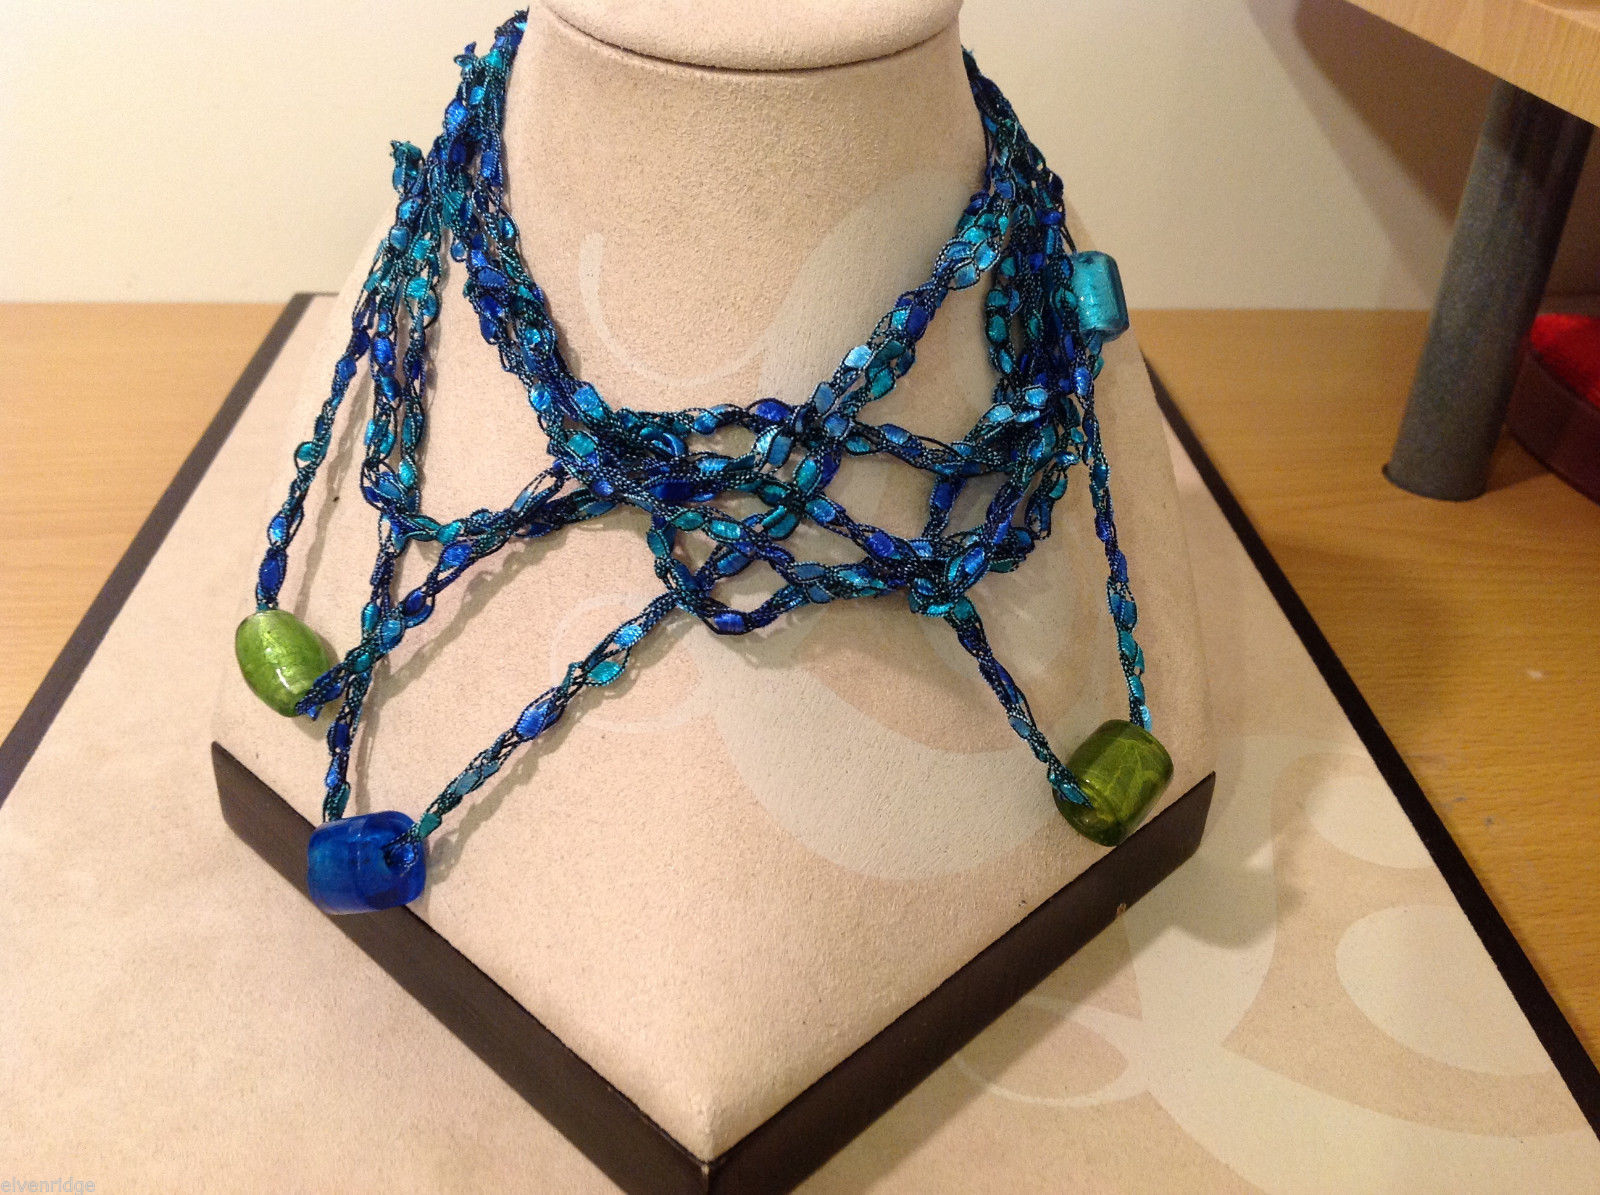 Blue shades Knit Fabric Layered look Necklace with blue, green, gold glass beads